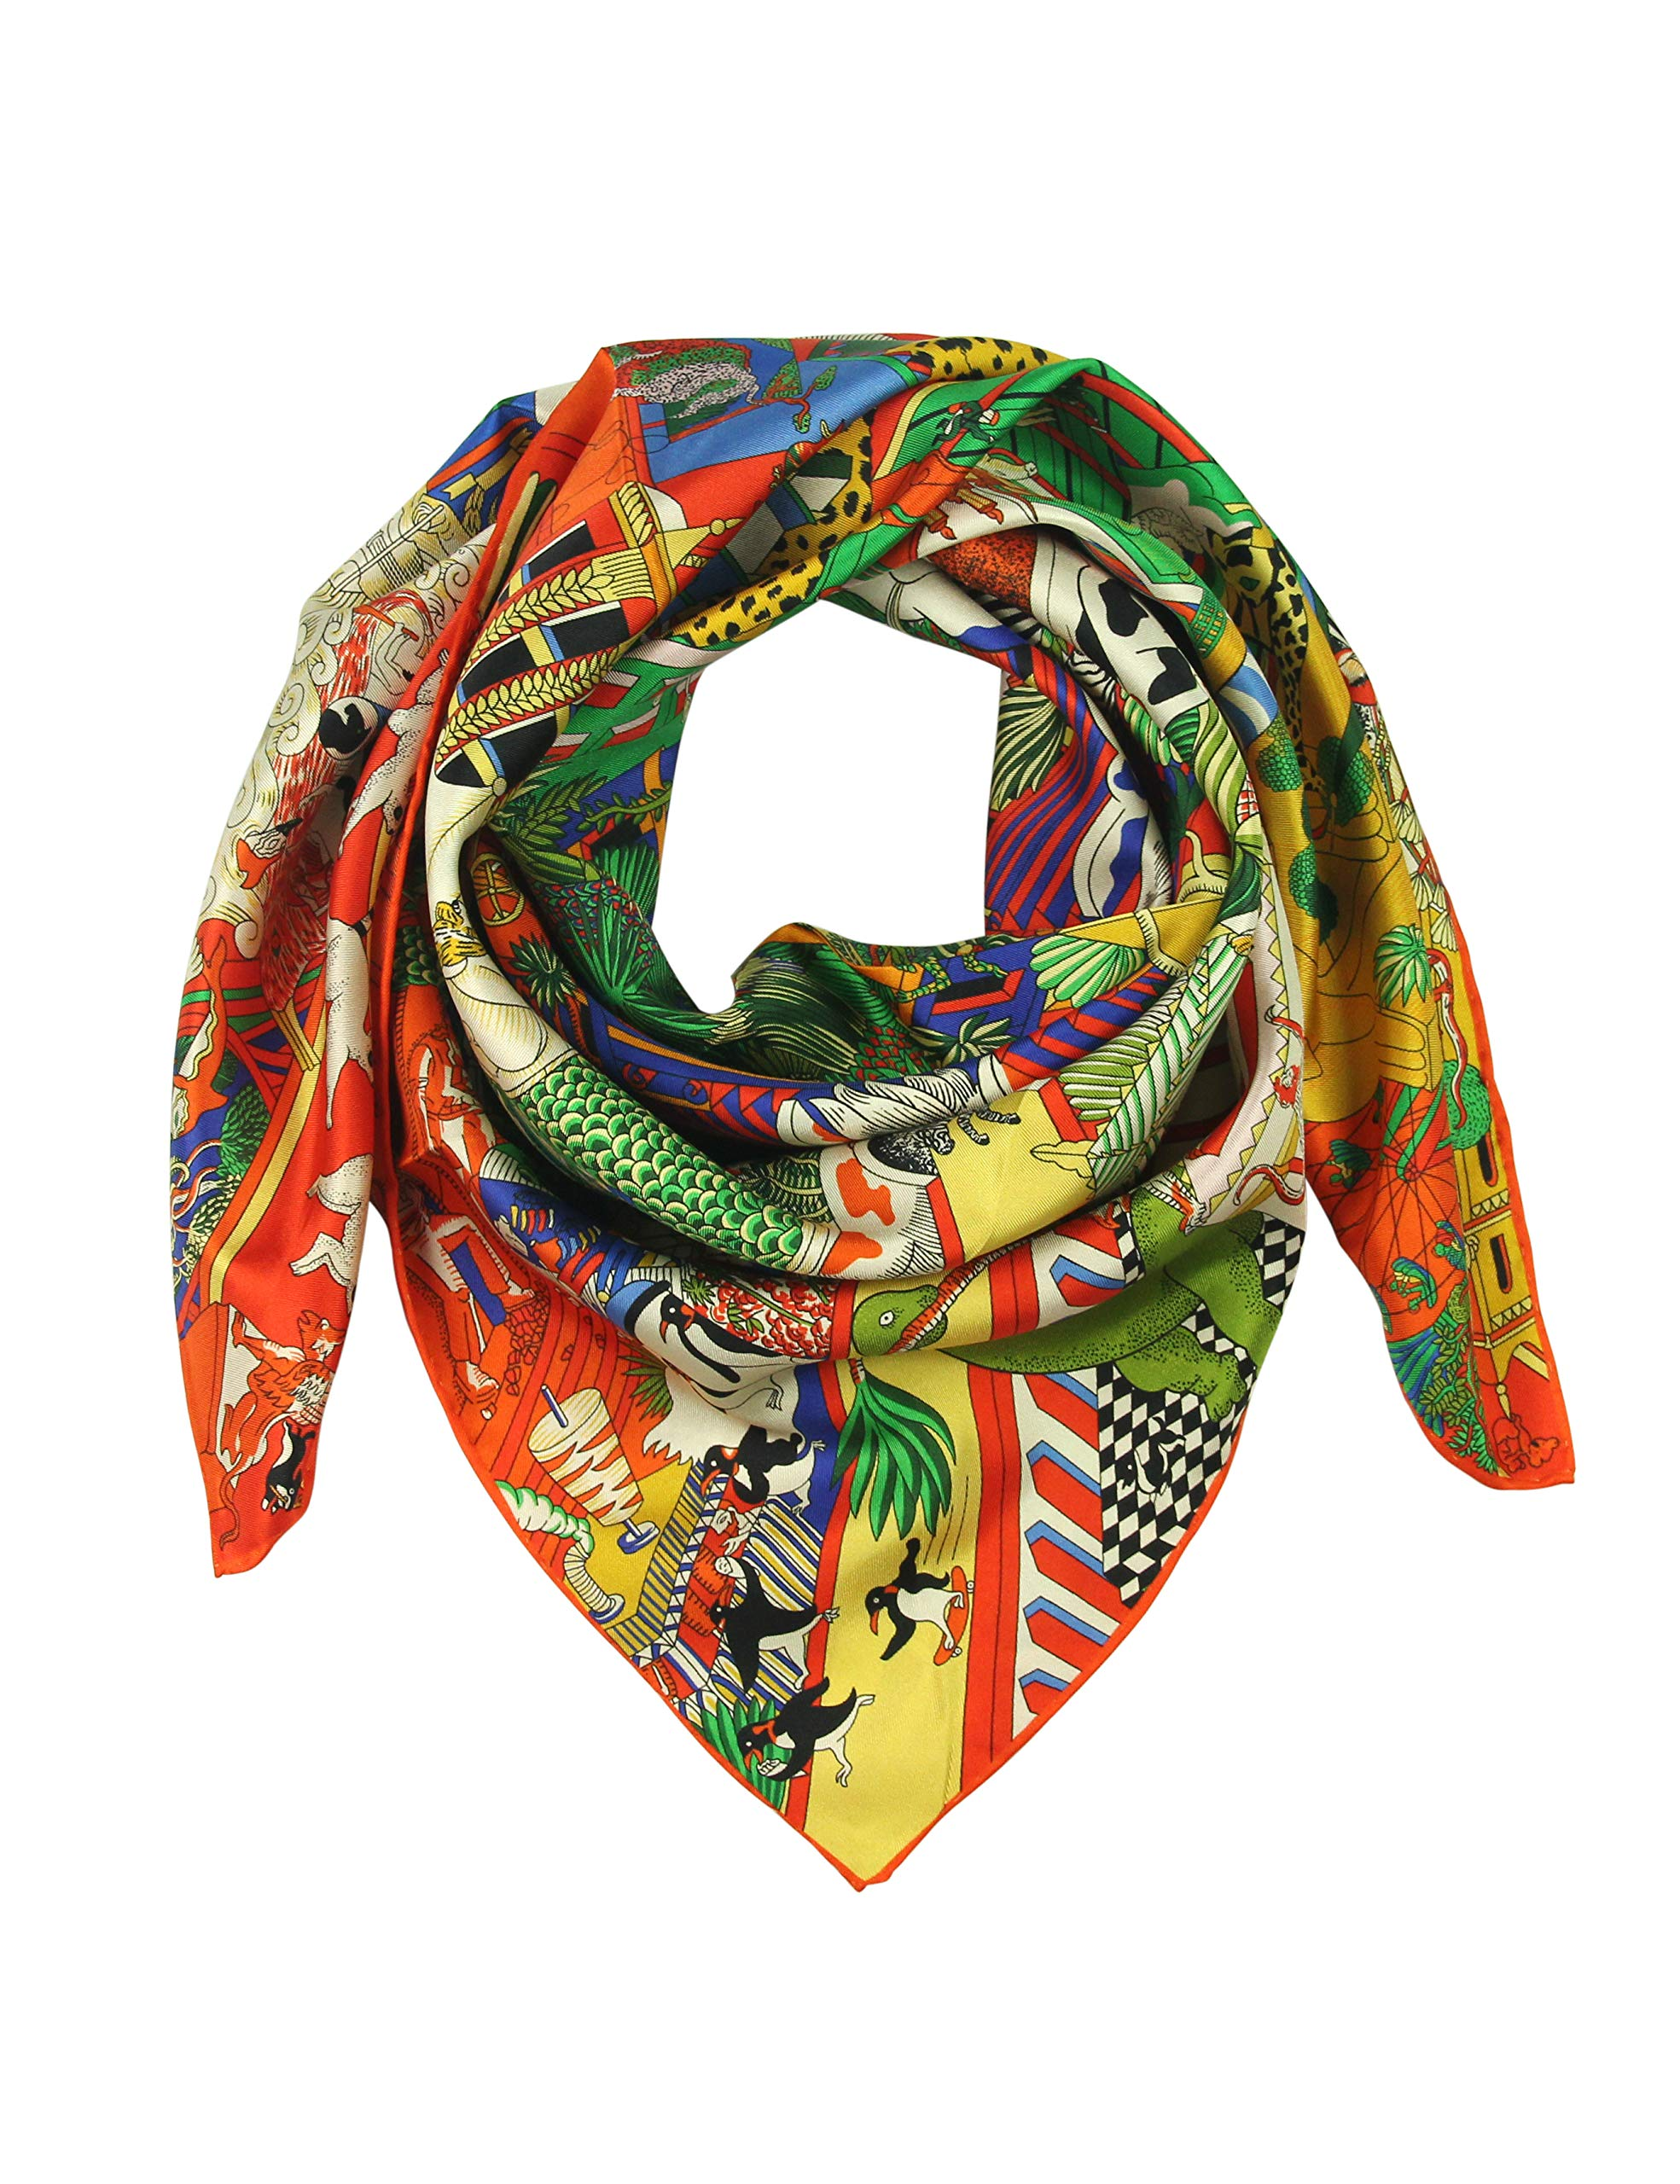 Silk Scarf Square Scarf for Hair Women-Pantonight 100% Pure Silk 14MM Hand Rolling Edge Silk Twill Scarf for Women (NO.412)